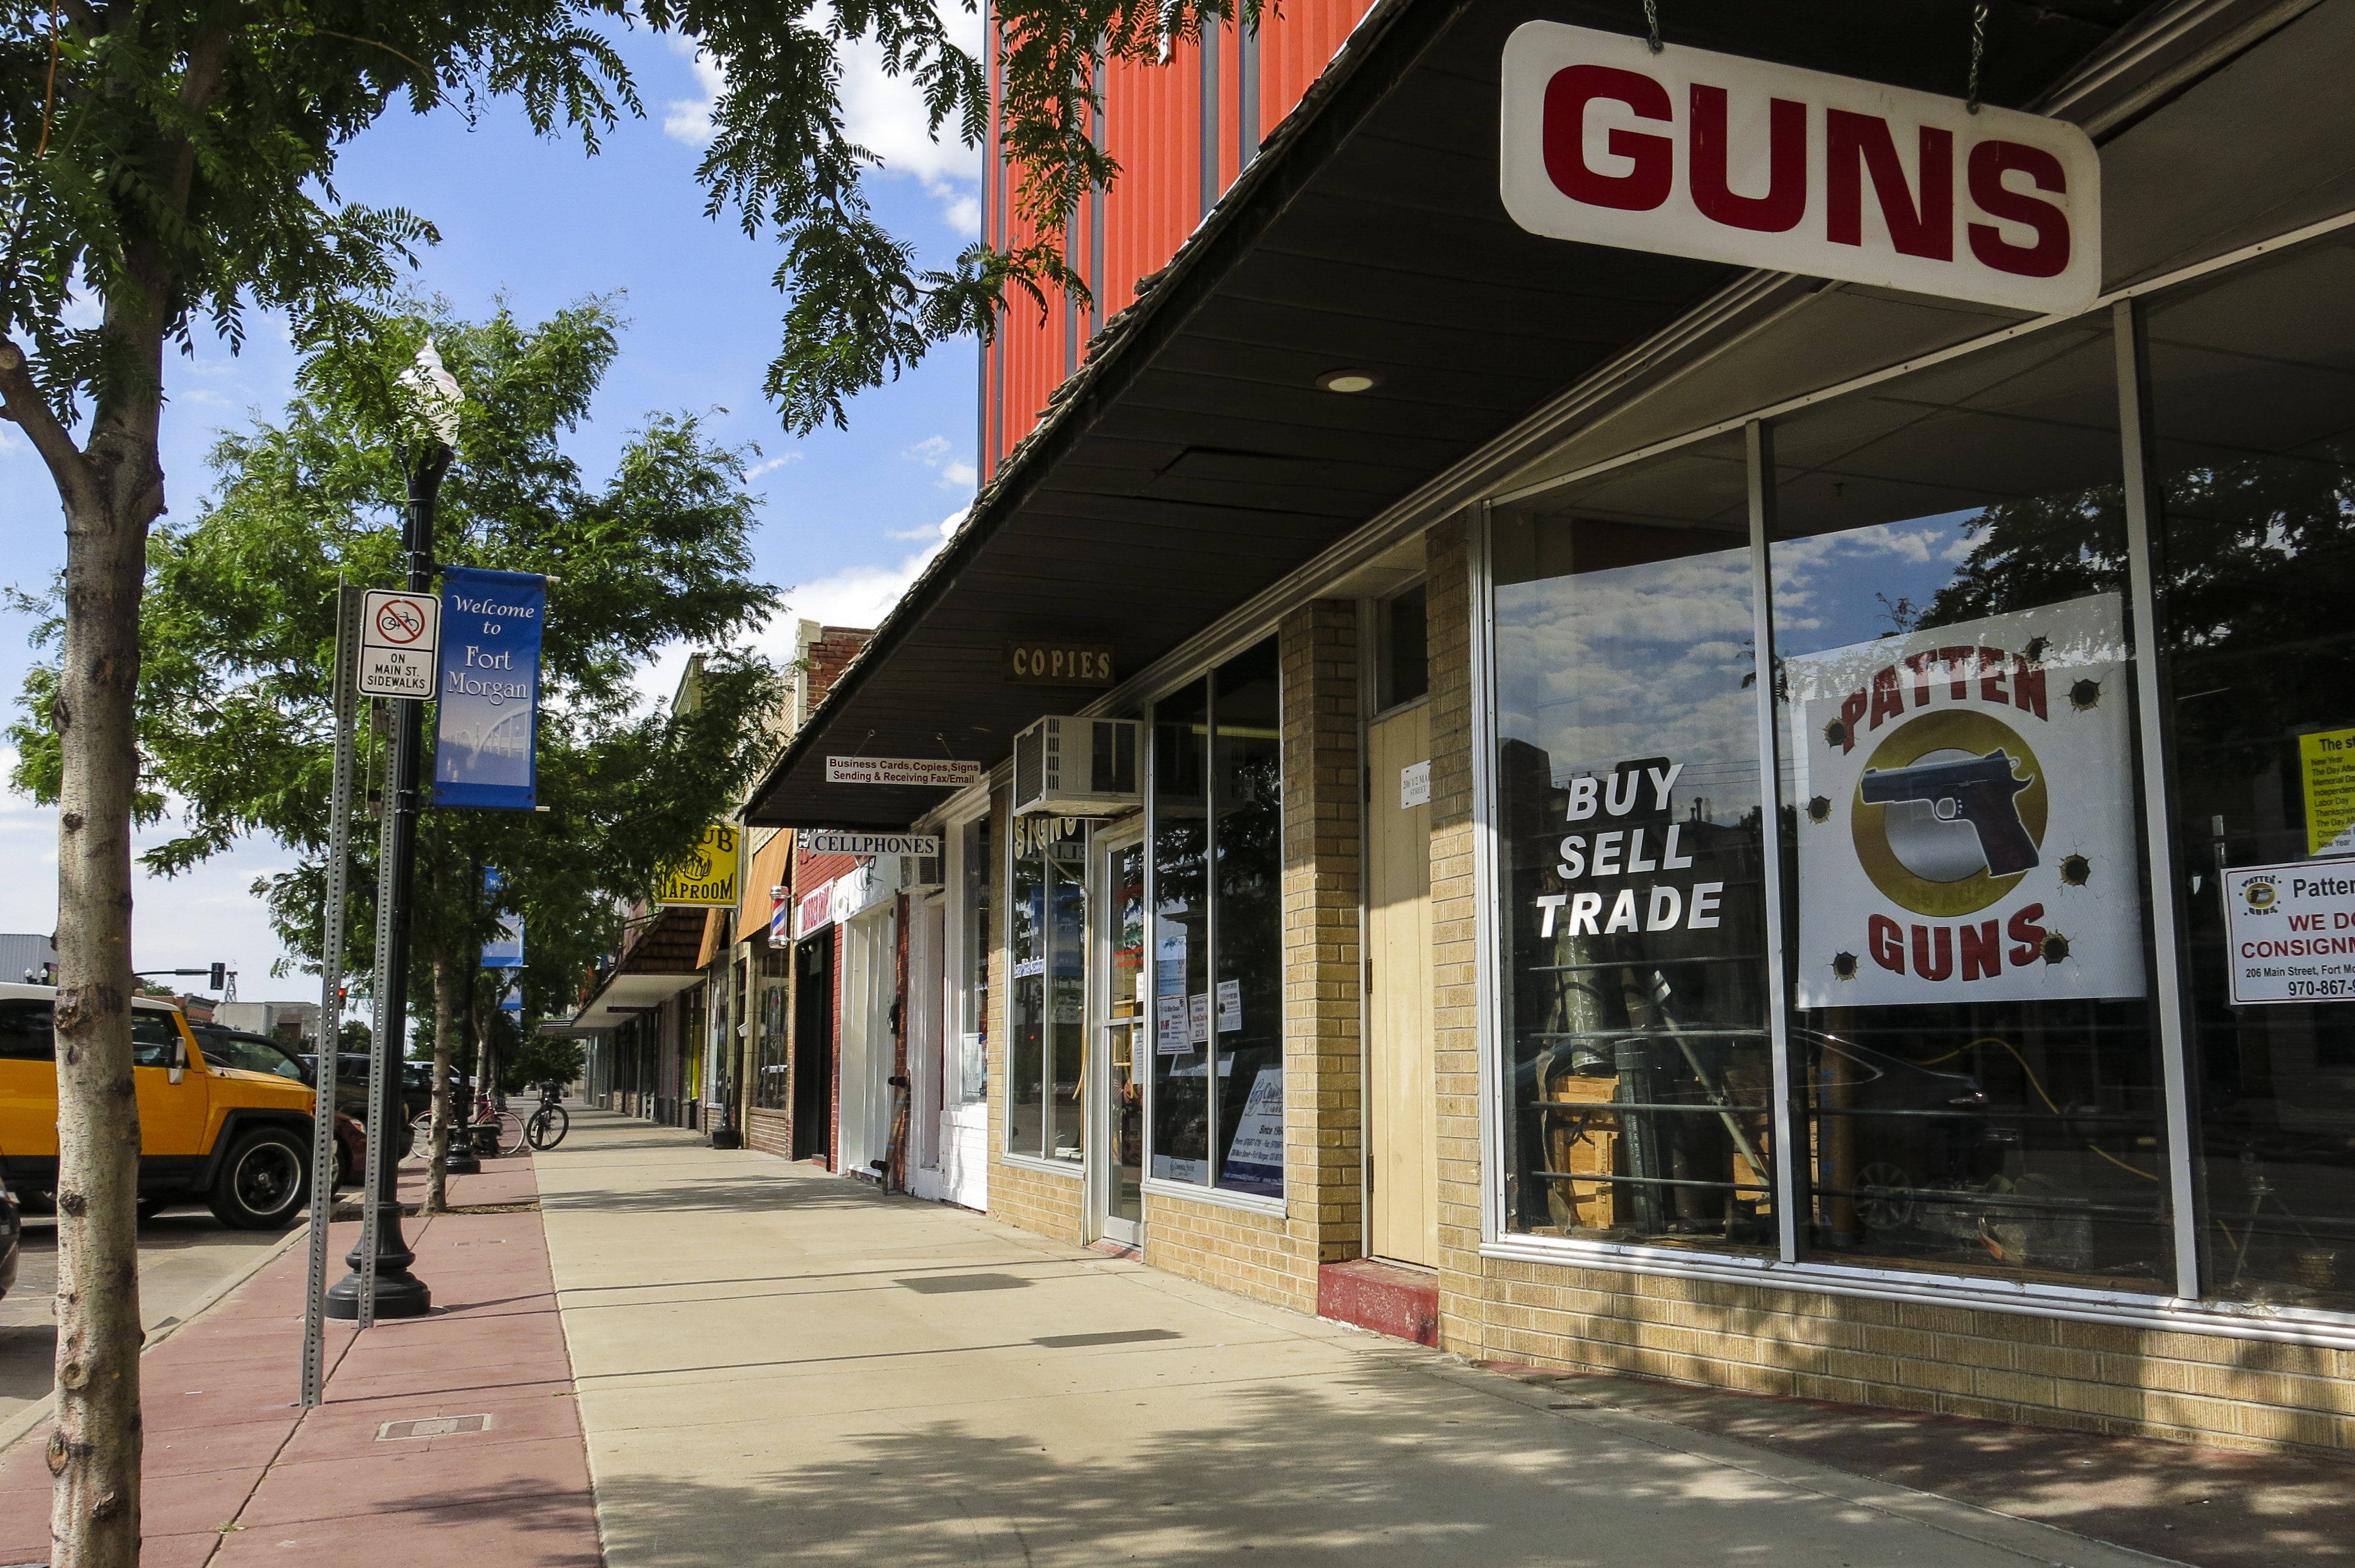 <p>Patten Guns and other shops line Main Street in Fort Morgan, Colorado.</p>